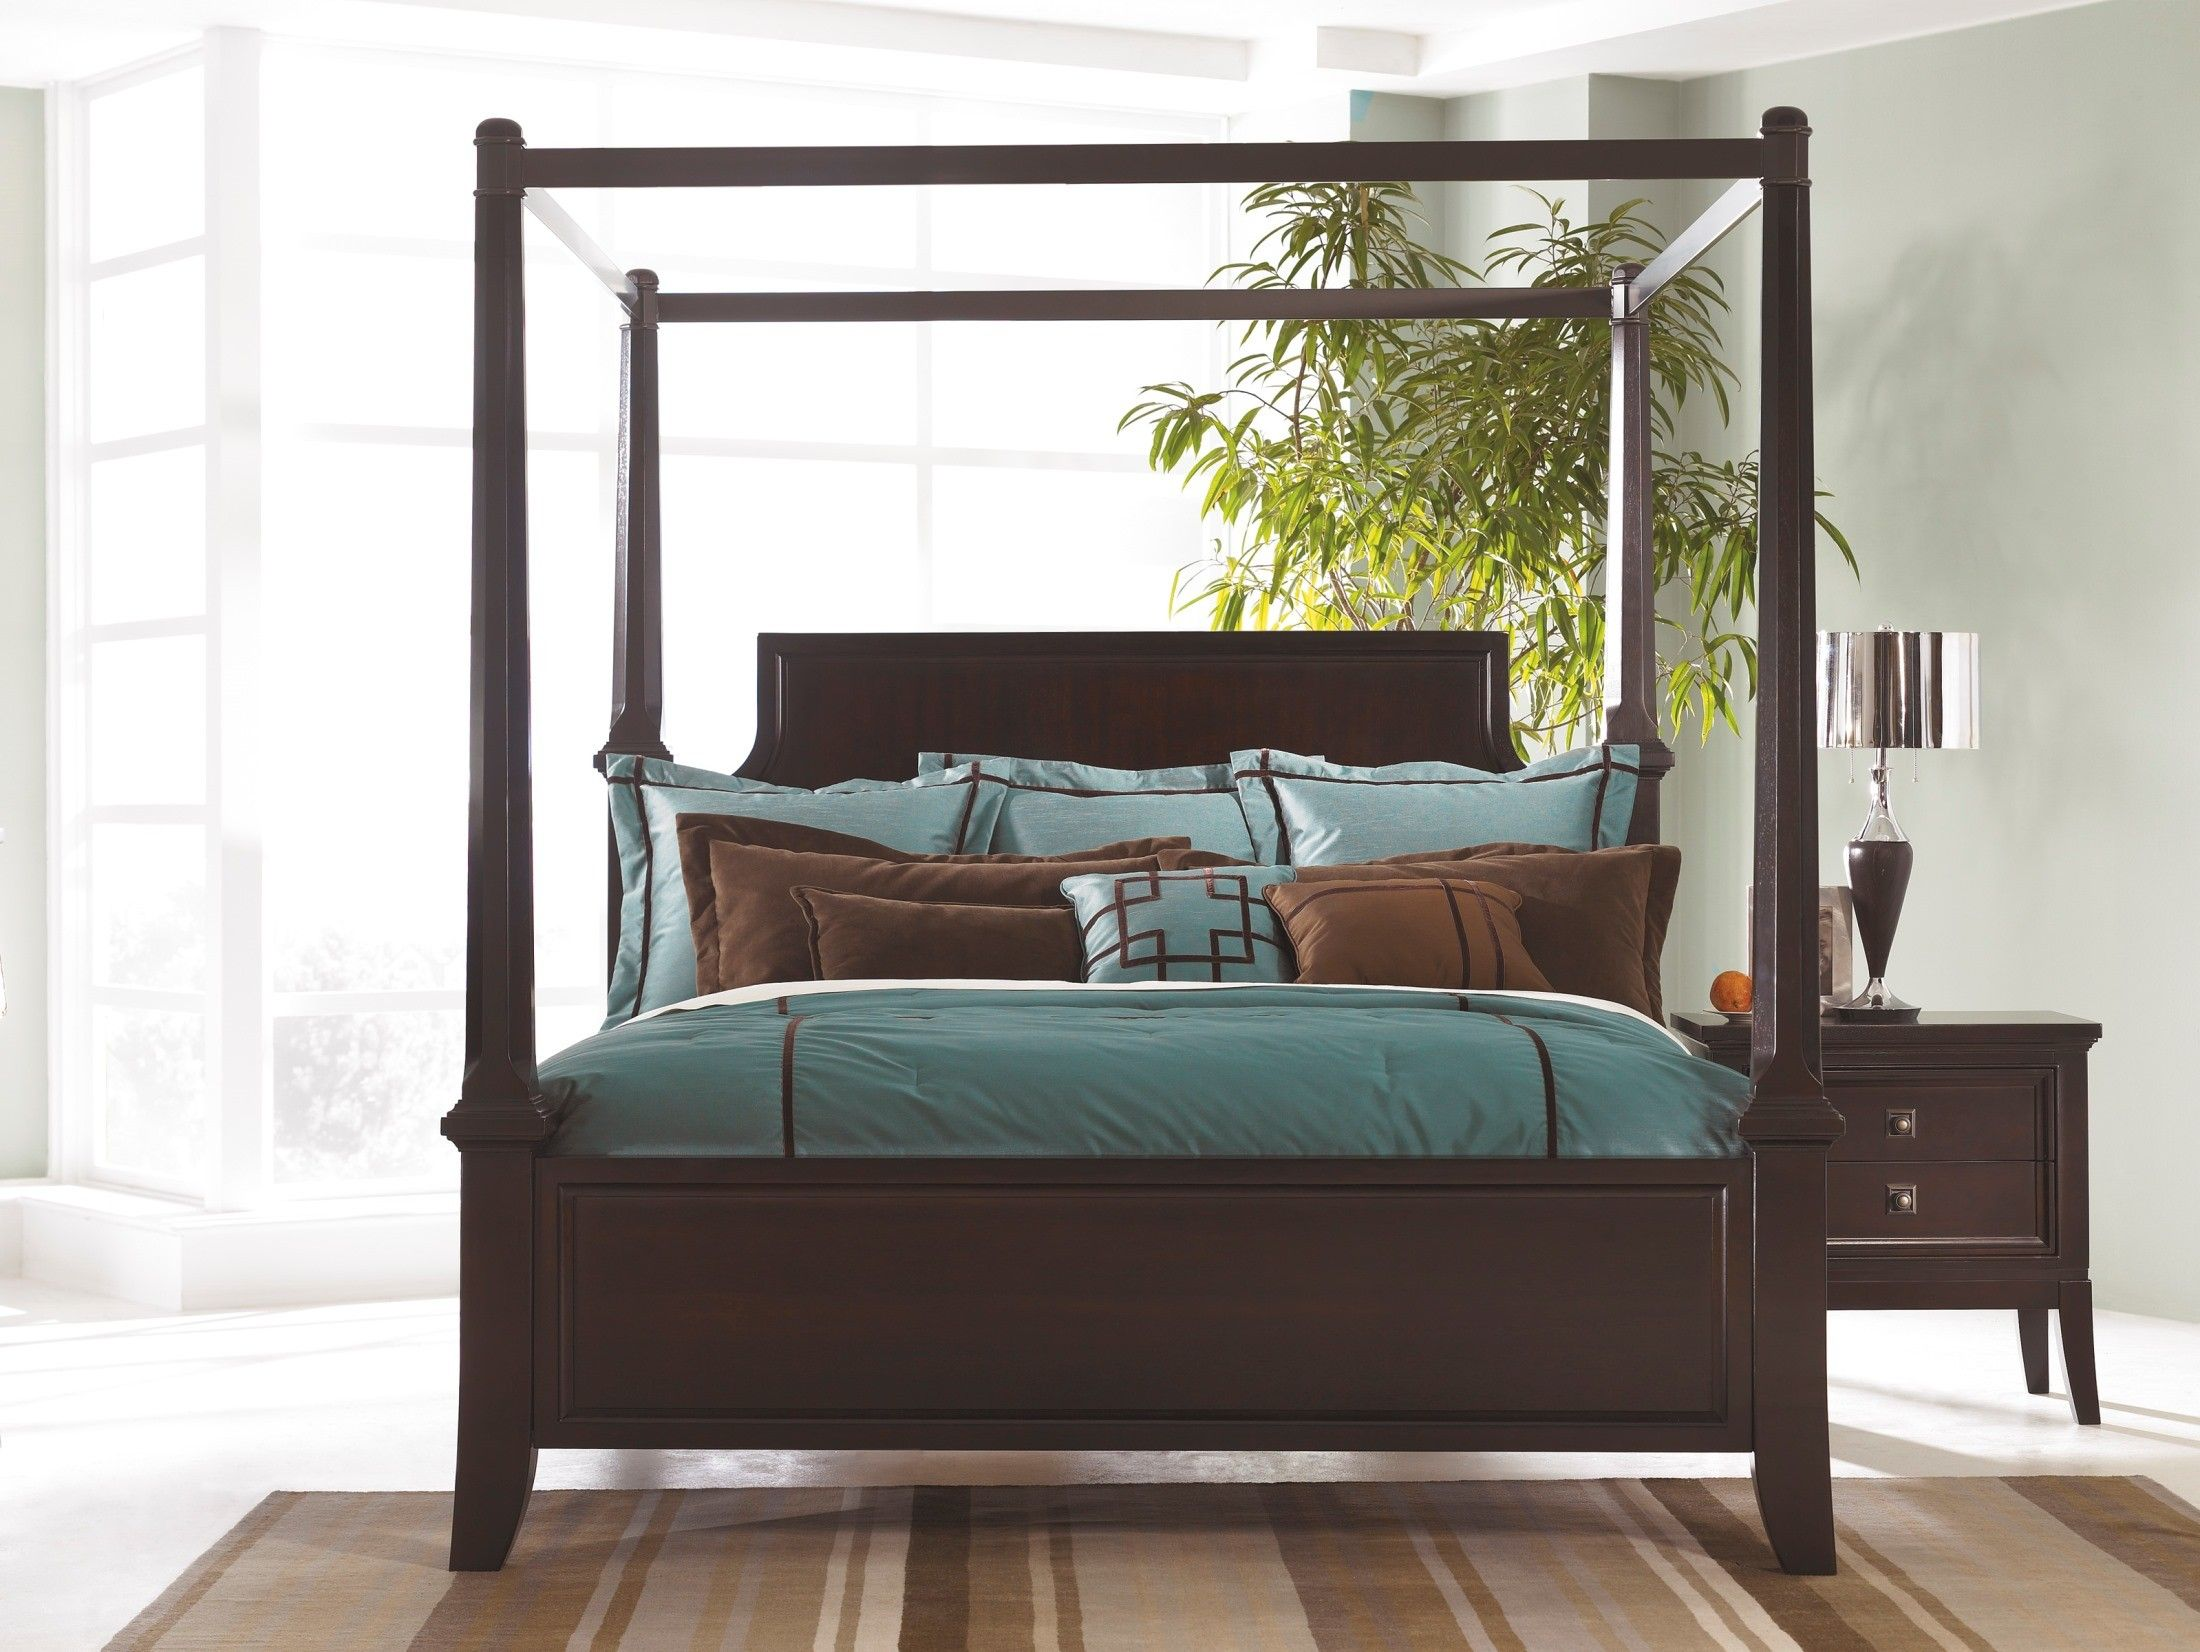 Martini Suite Queen Poster Bed B551 50 71 98 Ashley Furniture